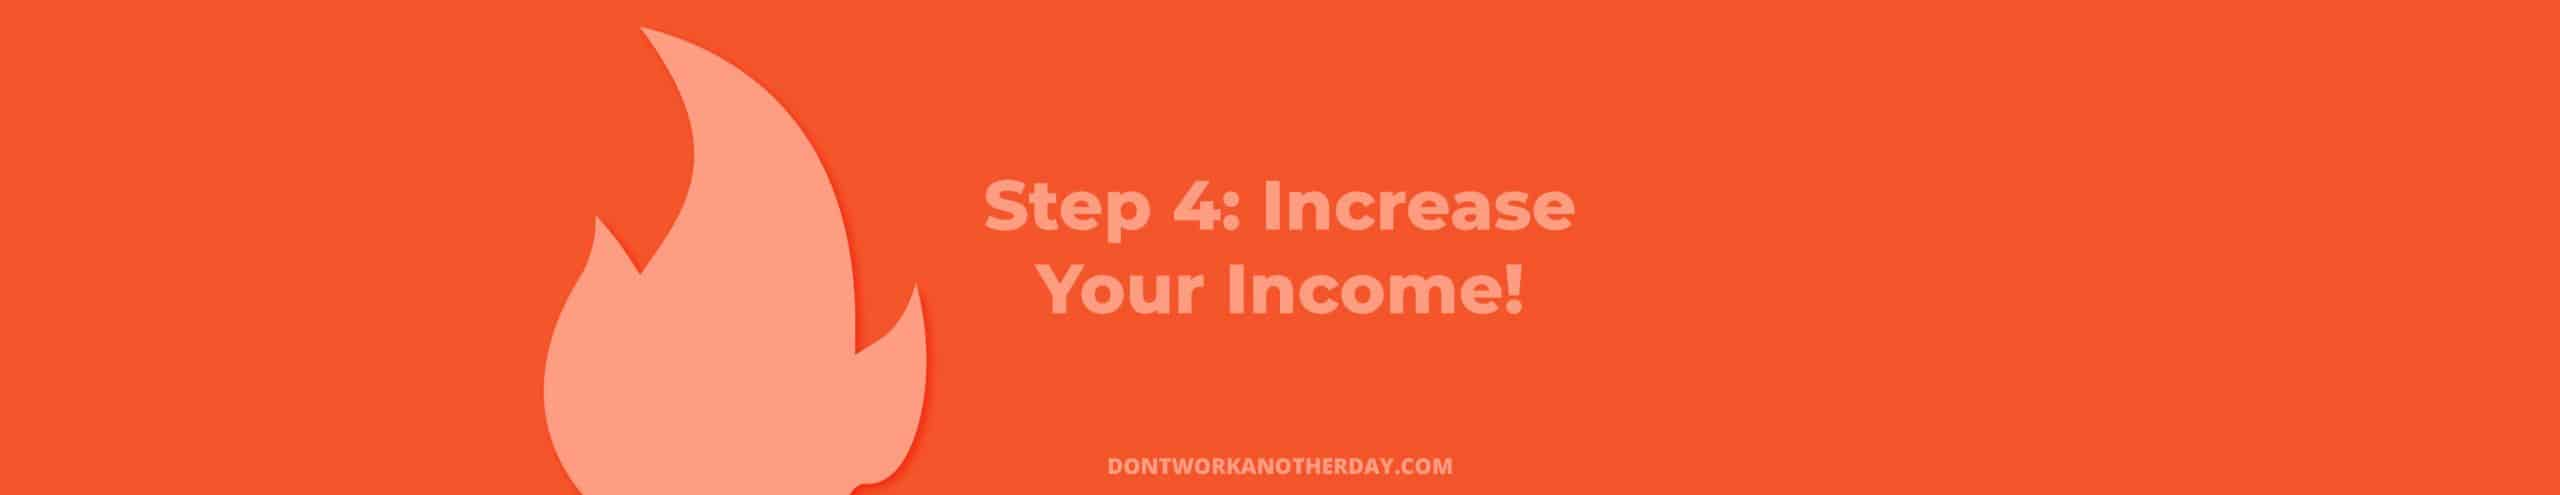 Financial Independence Retire Early Step 4